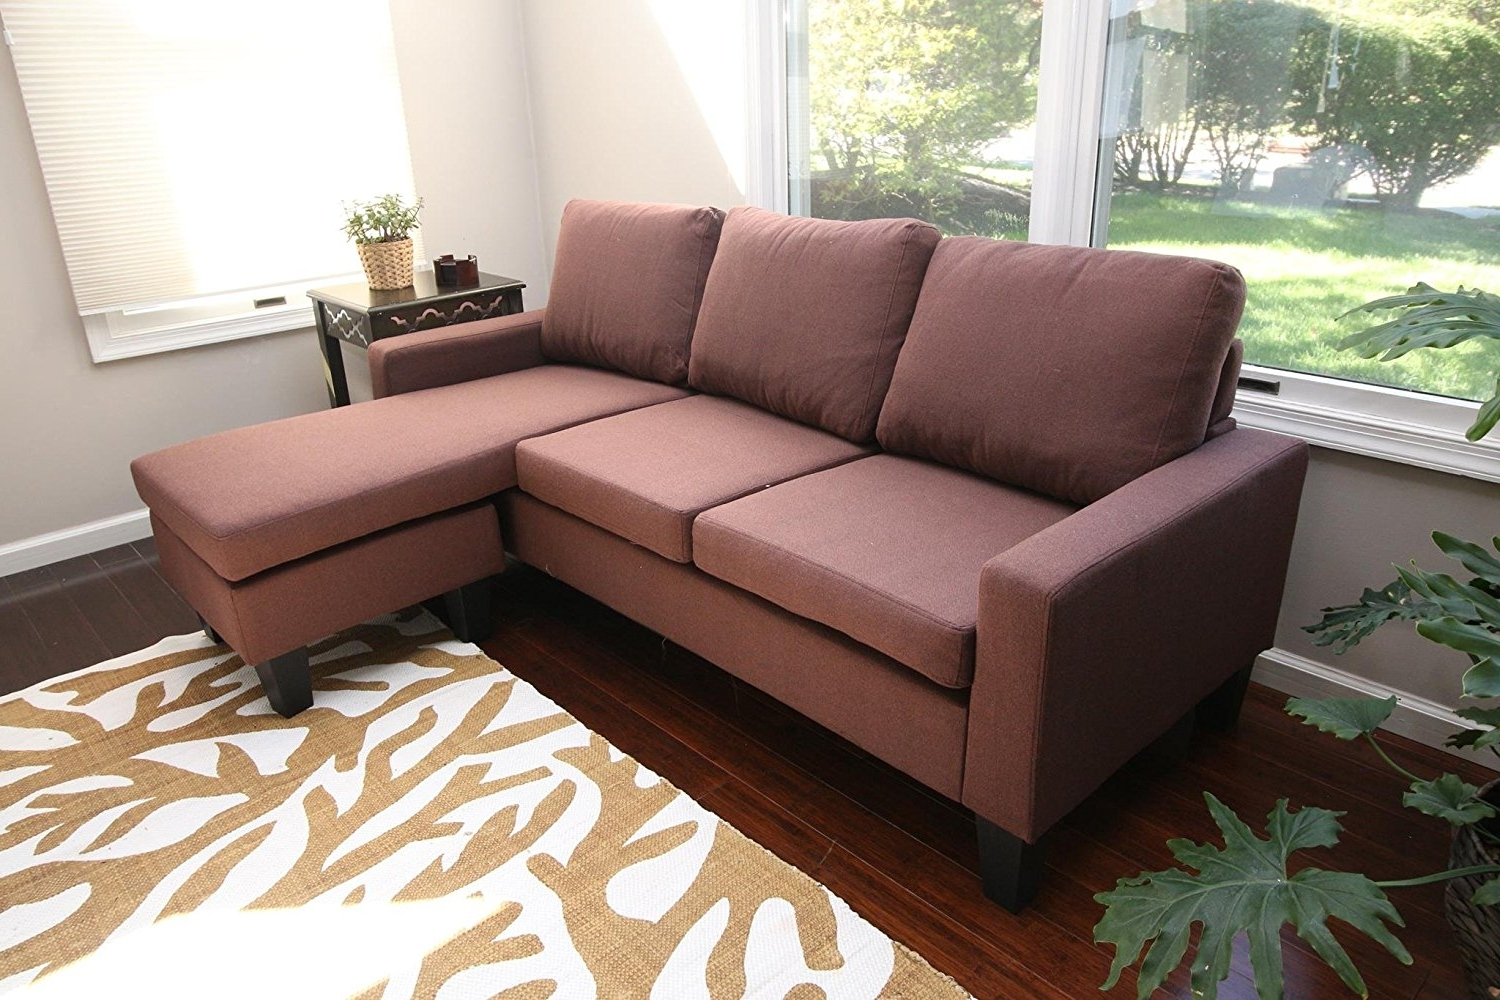 80X80 Sectional Sofas throughout Trendy Furniture : Corner Couch 3D Model Zen Sectional Sofa Corner Couch